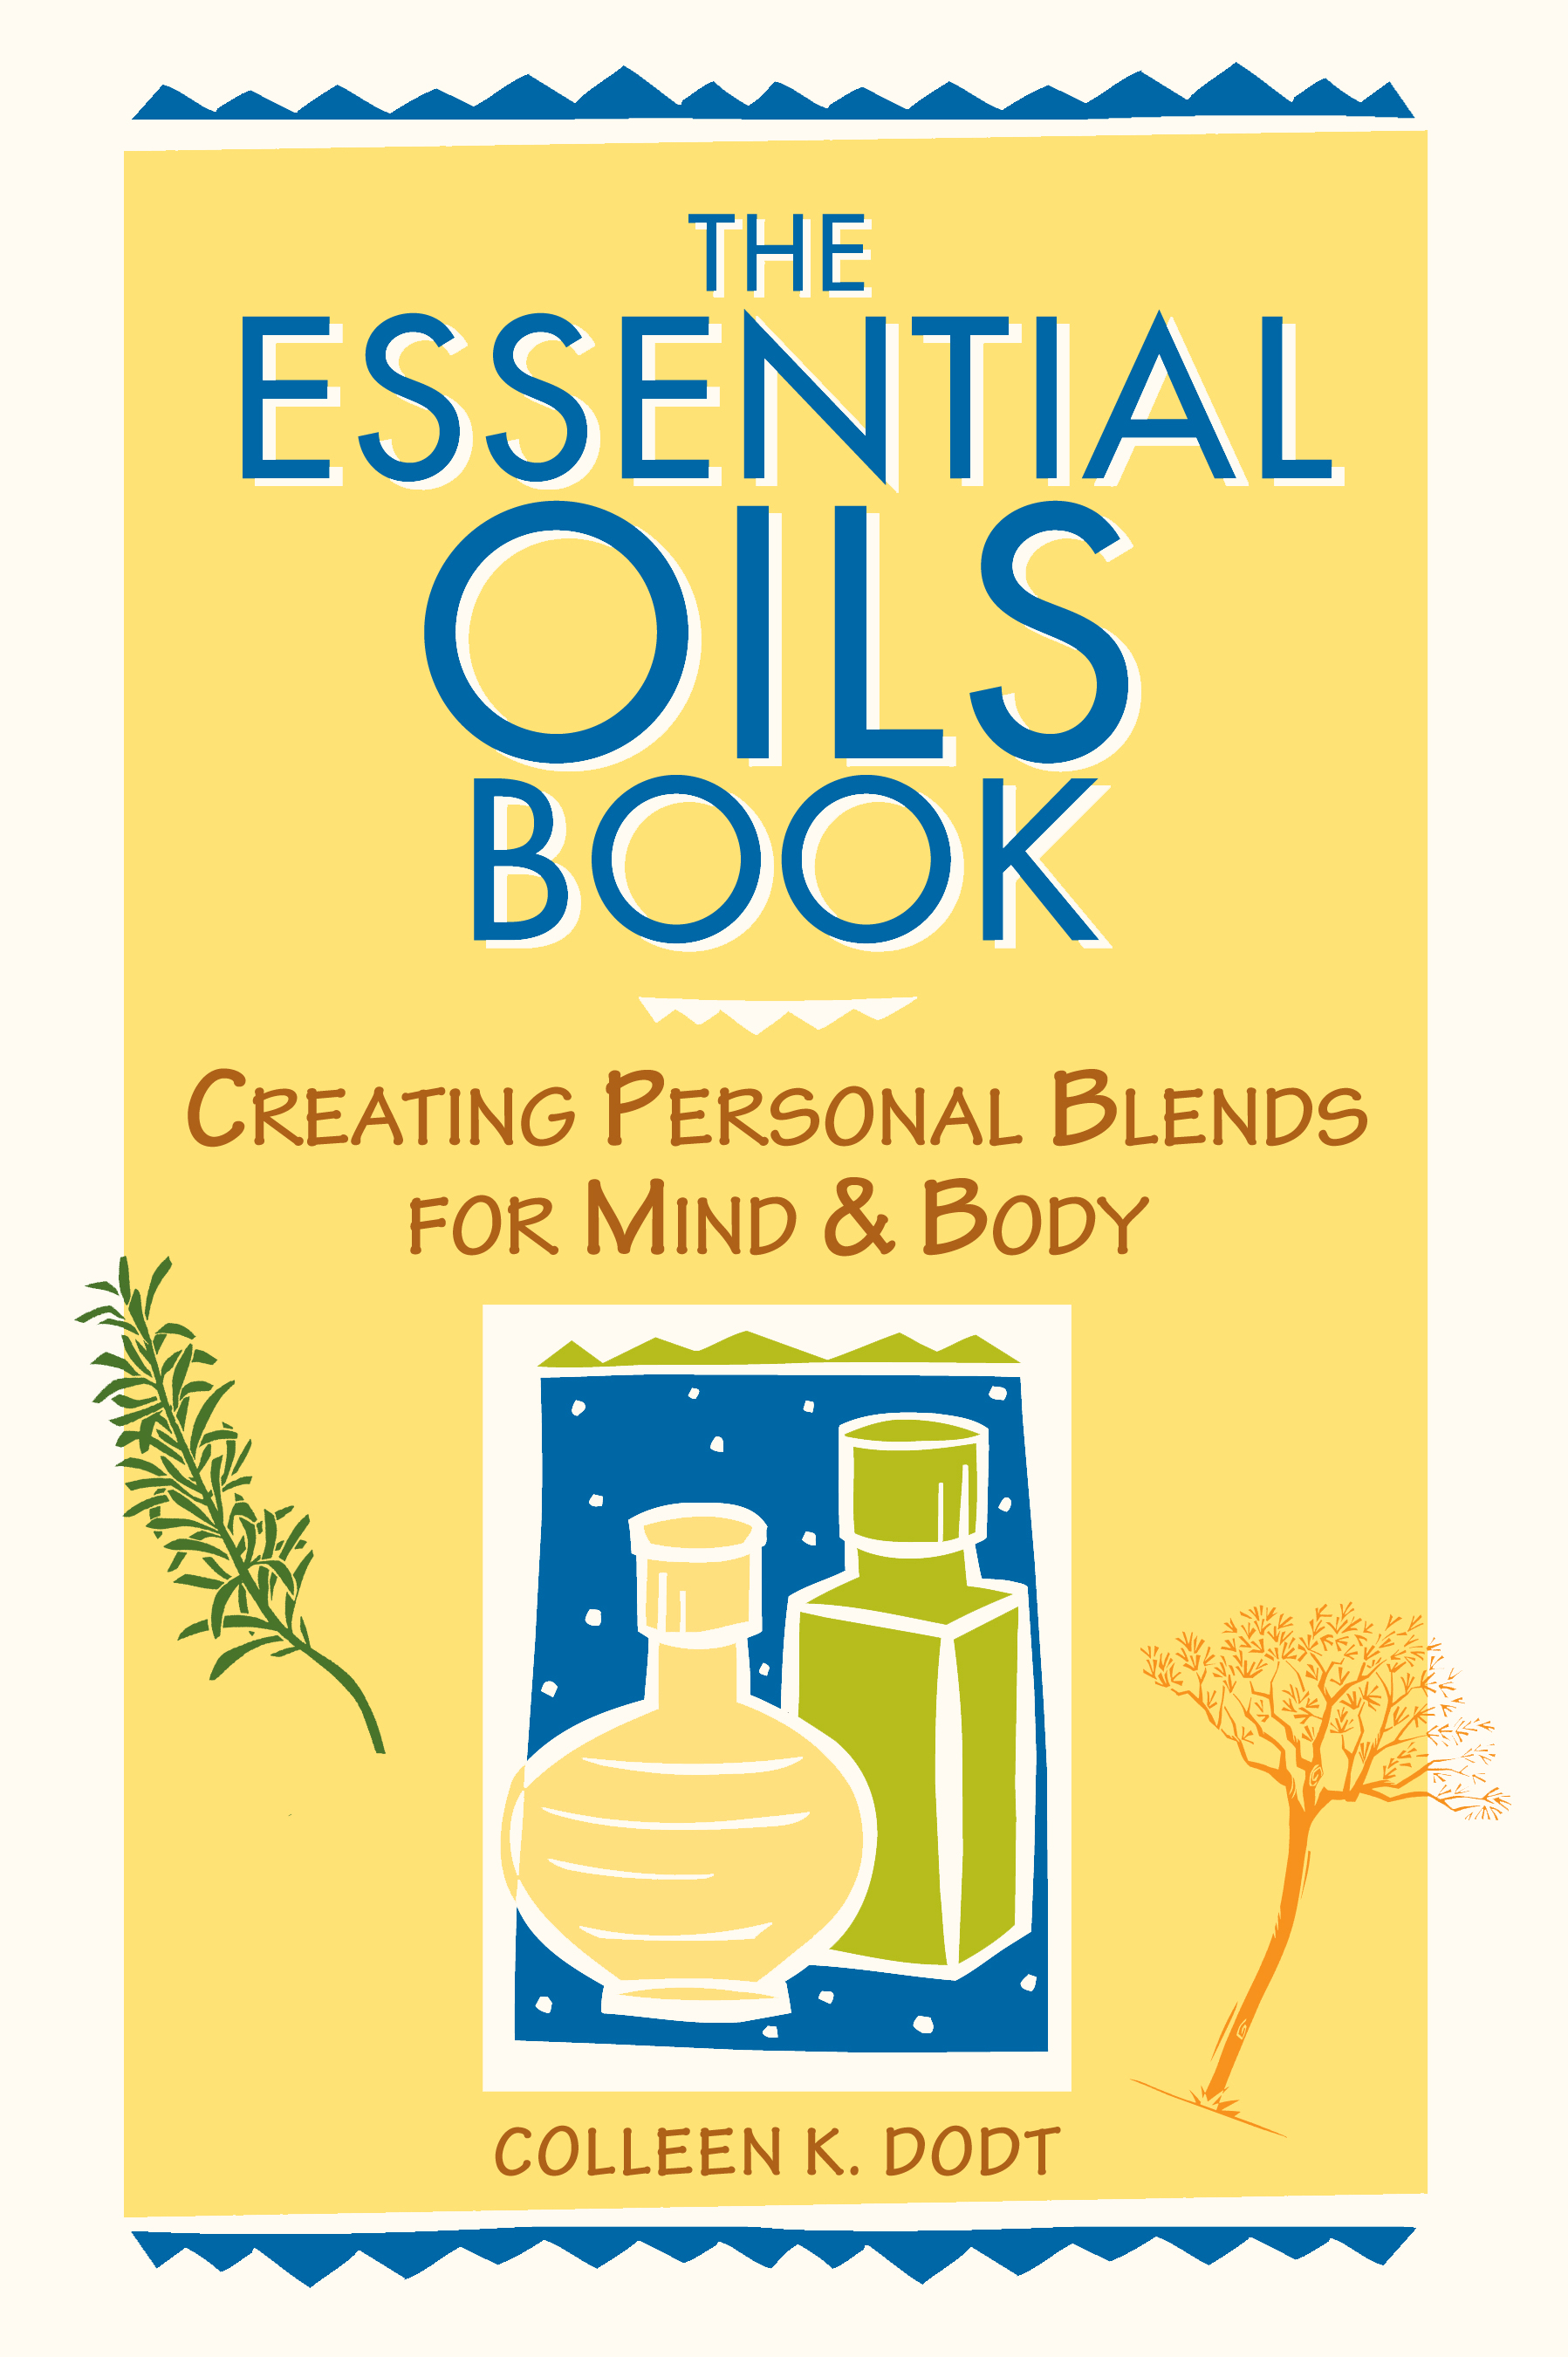 The Essential Oils Book Creating Personal Blends for Mind & Body - Colleen K. Dodt